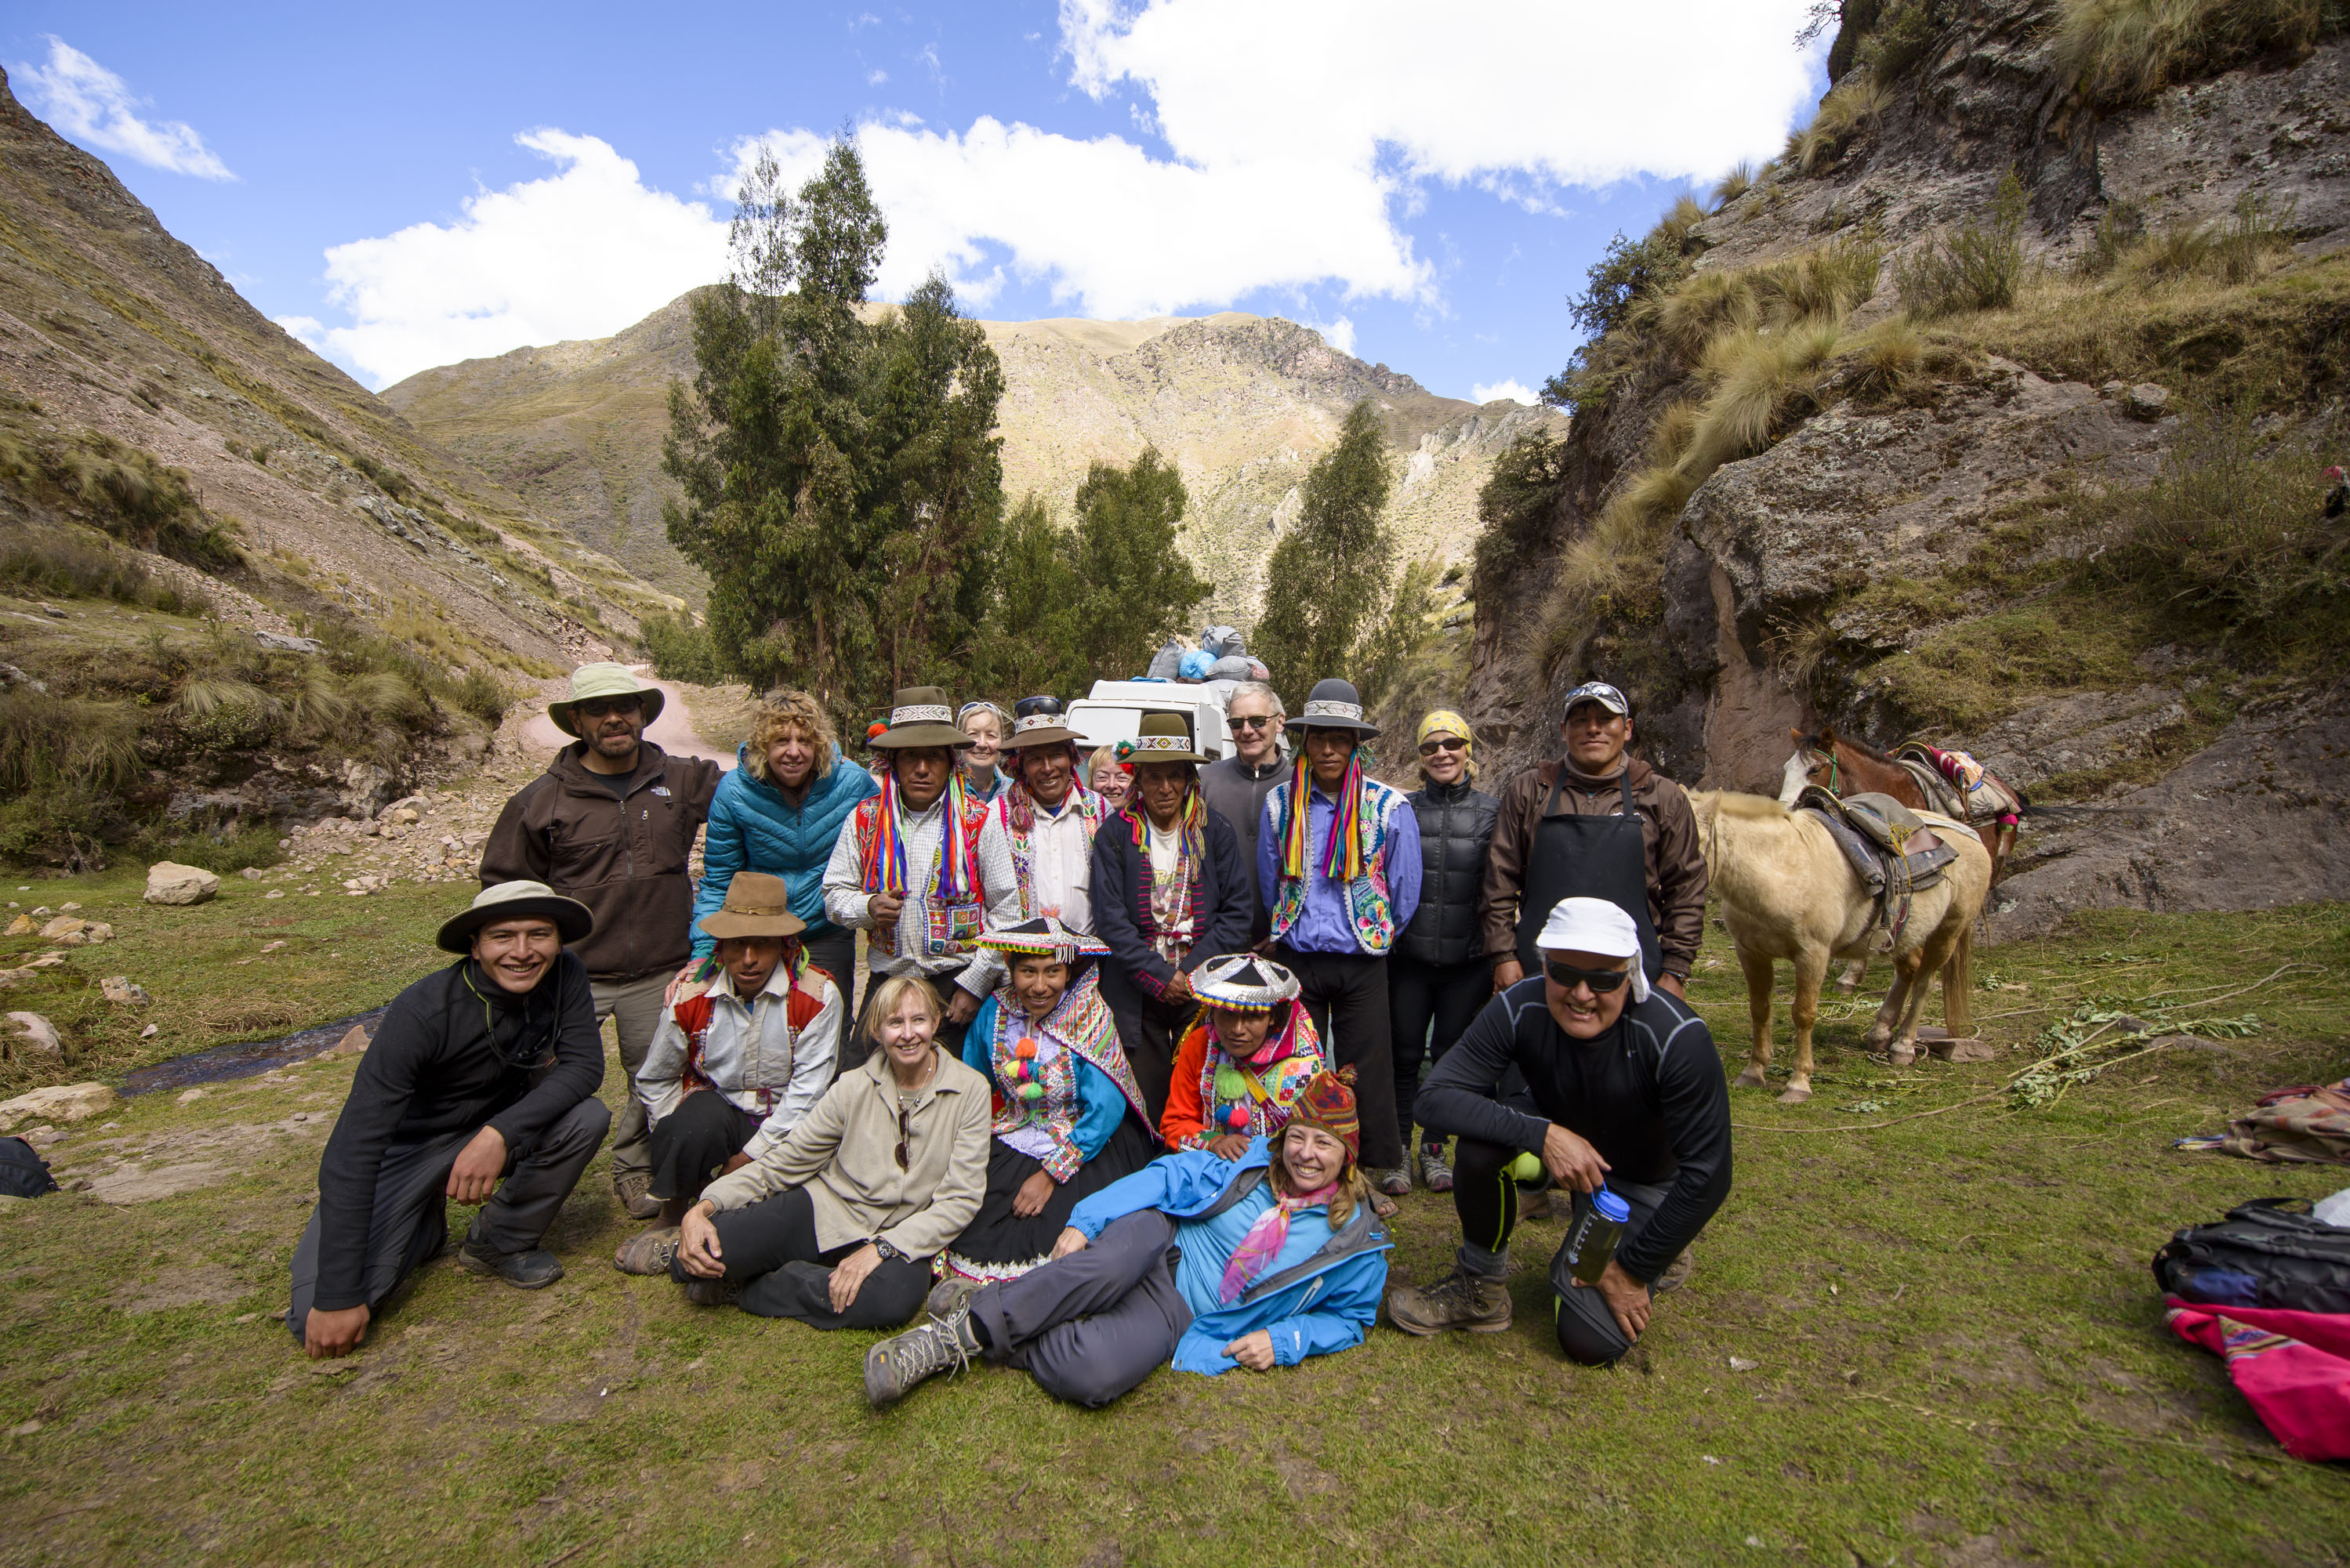 Andean Lodges: bringing together native Andean communities and visitors in Peru's amazingly beautiful mountains